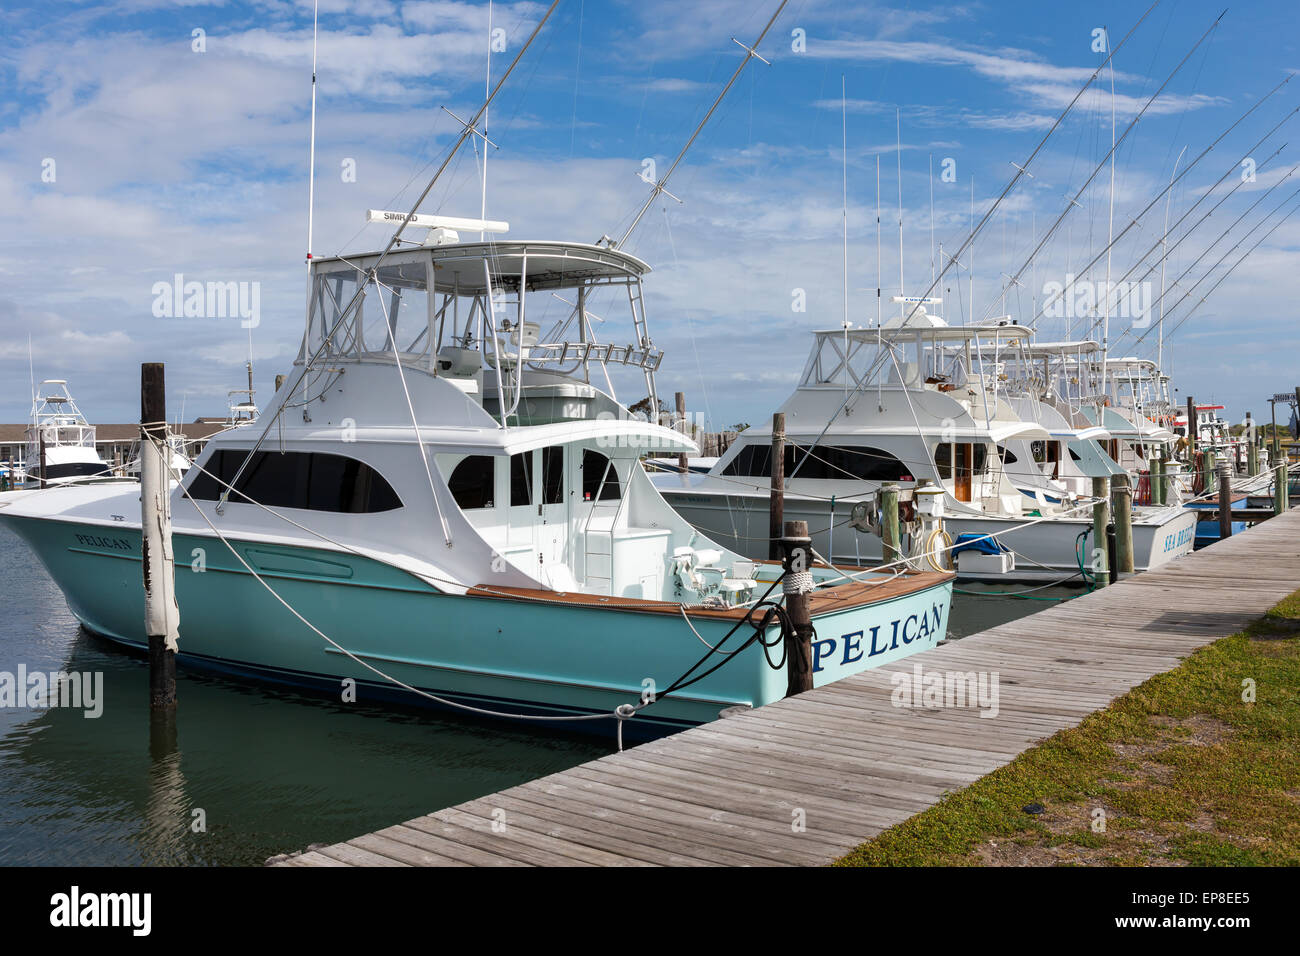 A fleet of charter fishing boats docked at the marina of for Oregon inlet fishing charters